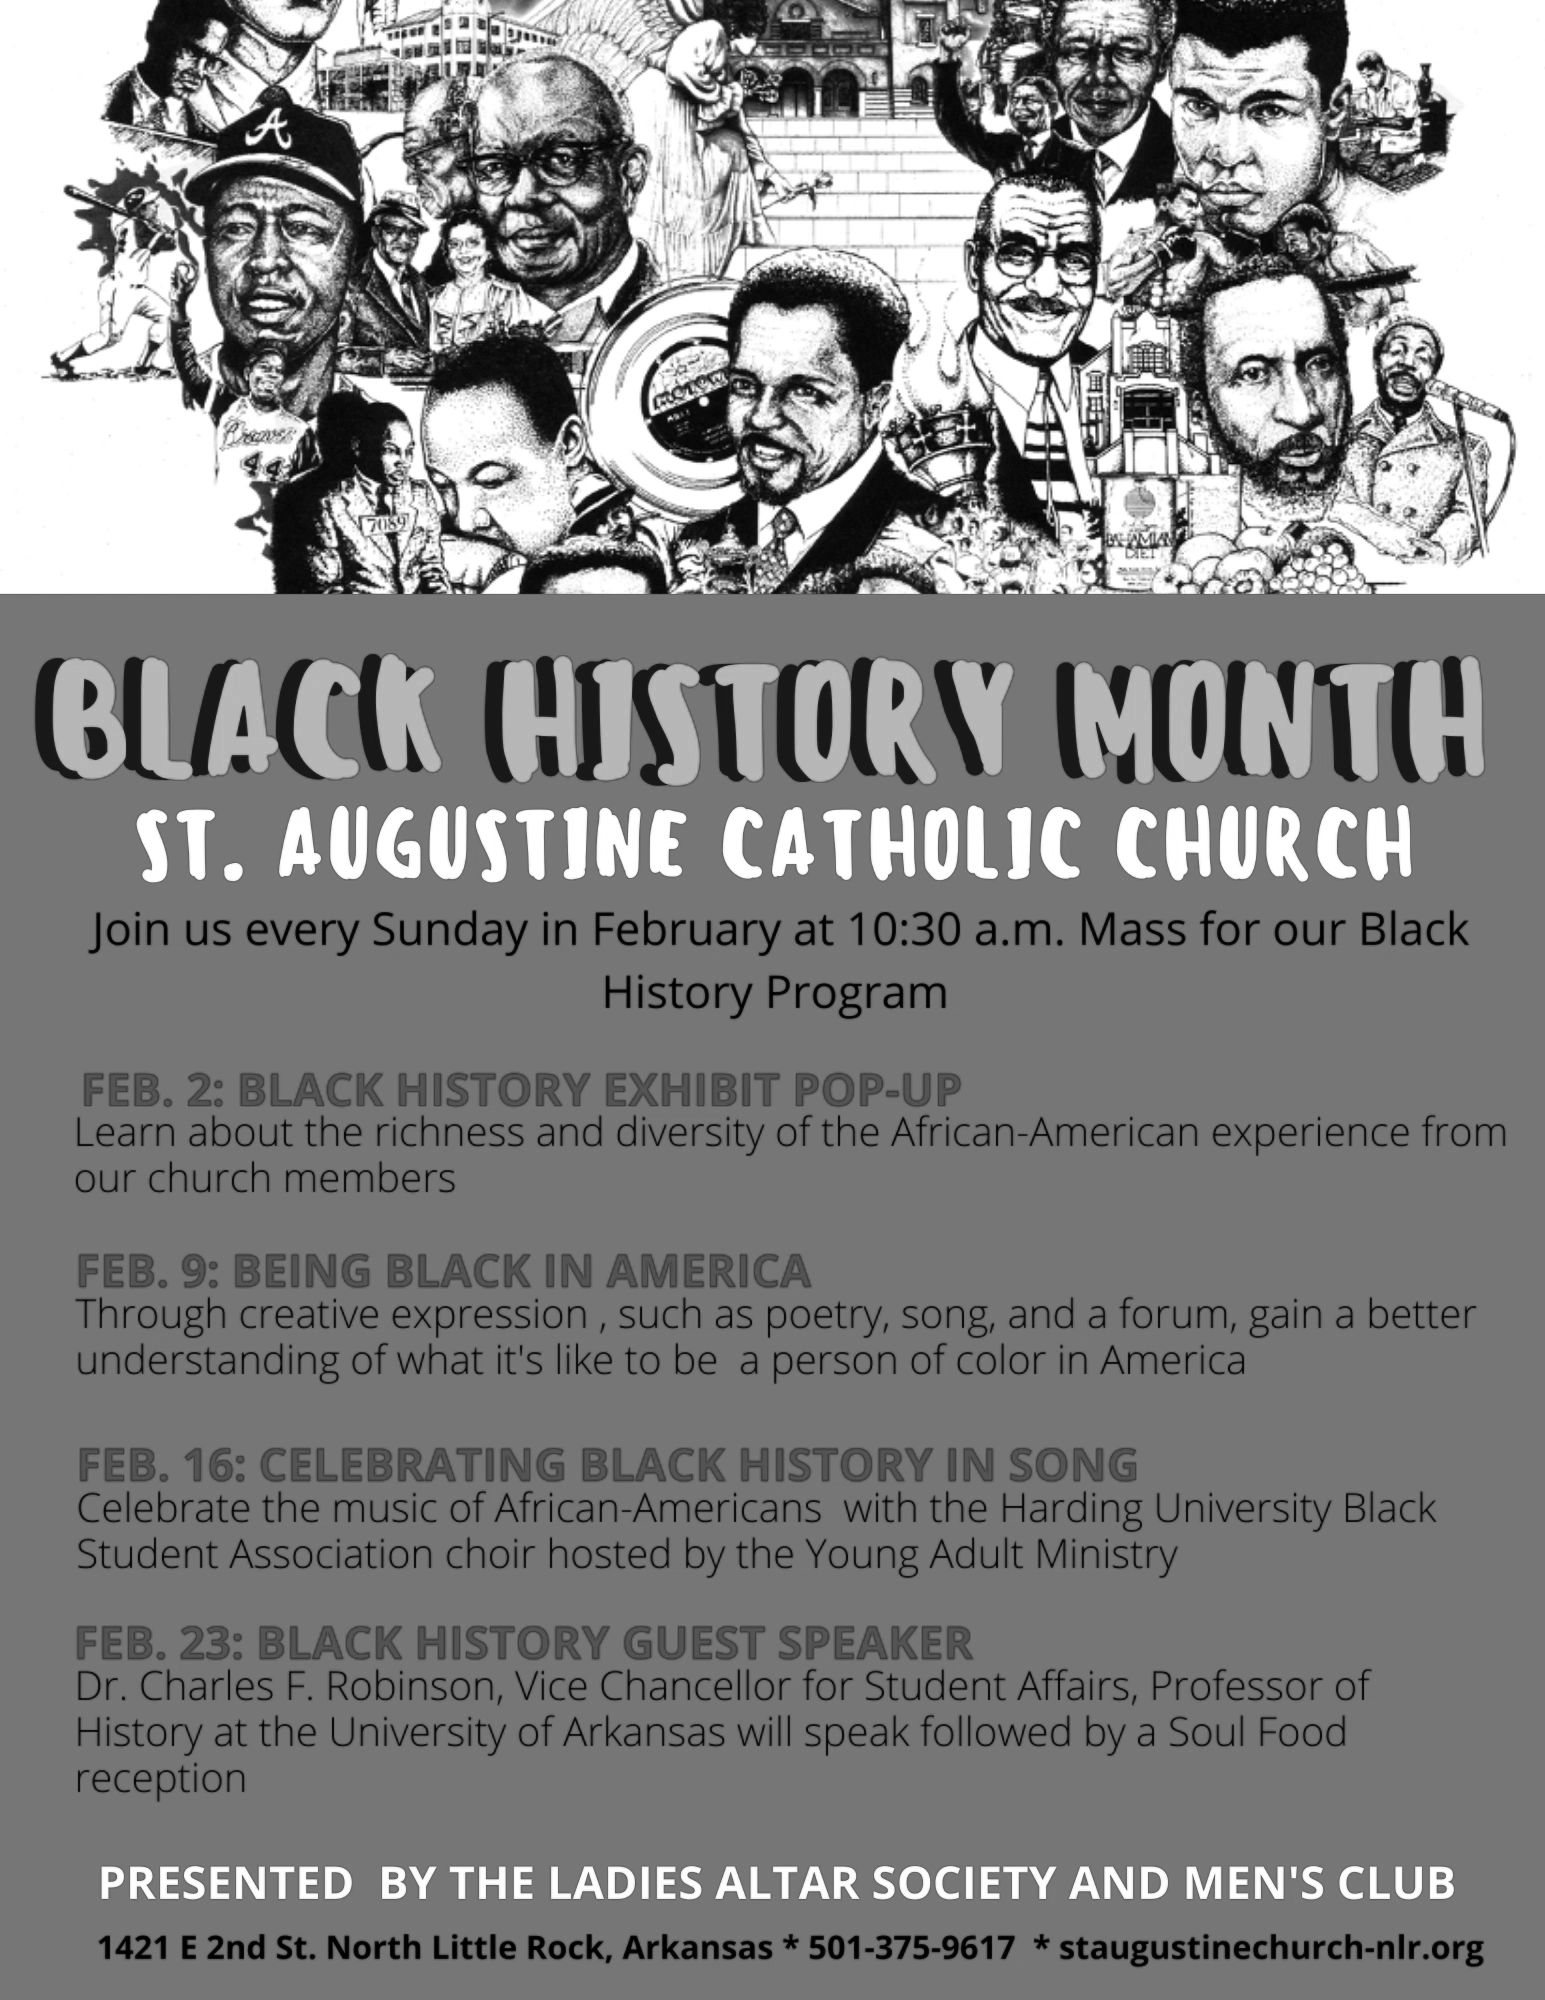 Black History Month Celebration at St. Augustine's Church in North Little Rock.